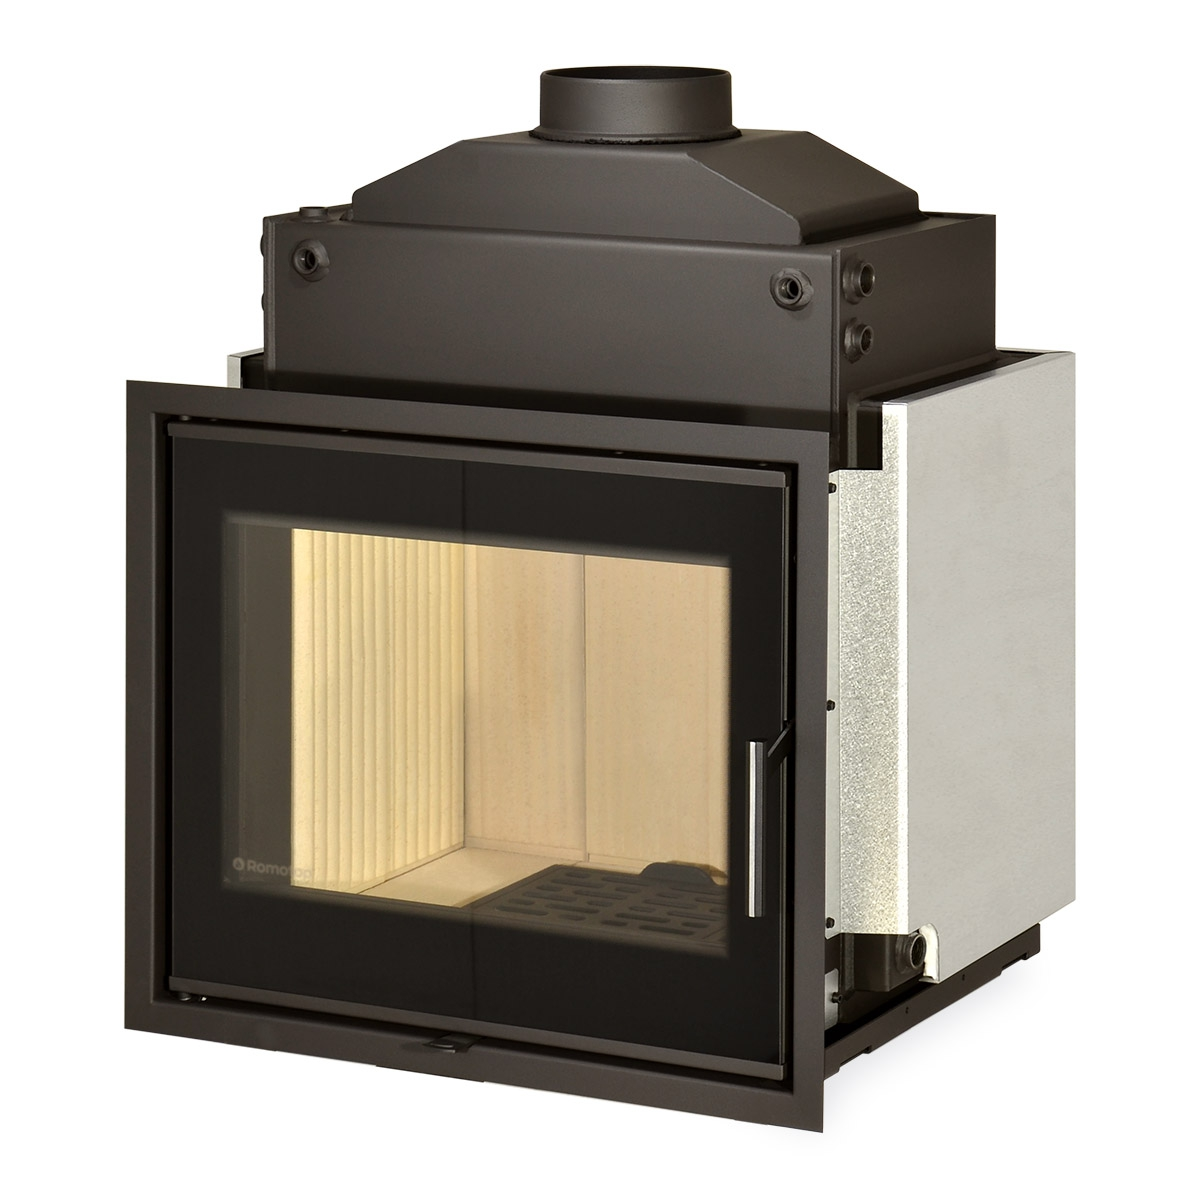 KV 6.6.2 HE - fireplace insert with hot-water exchanger